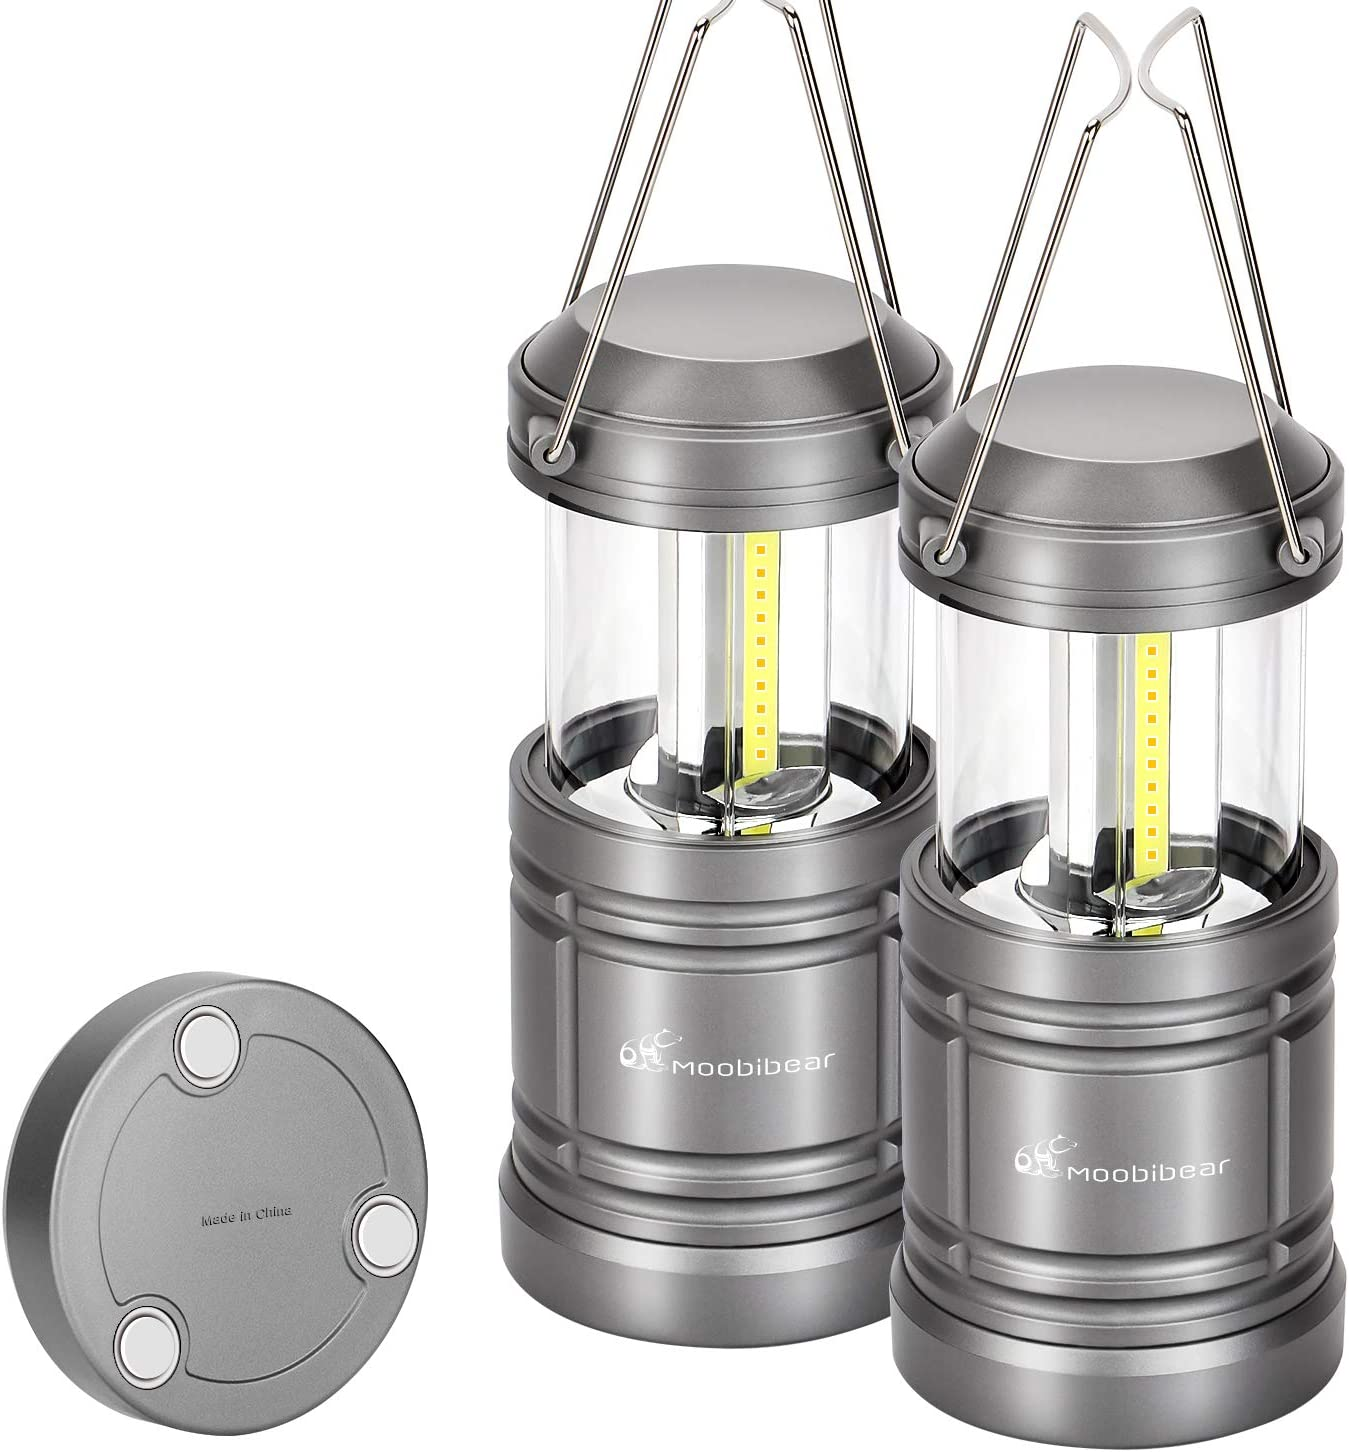 Outage 4 Modes Emergency Hiking 2 Pack Moobibear LED Camping Lantern Flashlights Outdoor 3 in 1 Rechargeable COB LED Lanterns with Magnetic and Hook Base Waterproof Collapsible Lamp for Tent